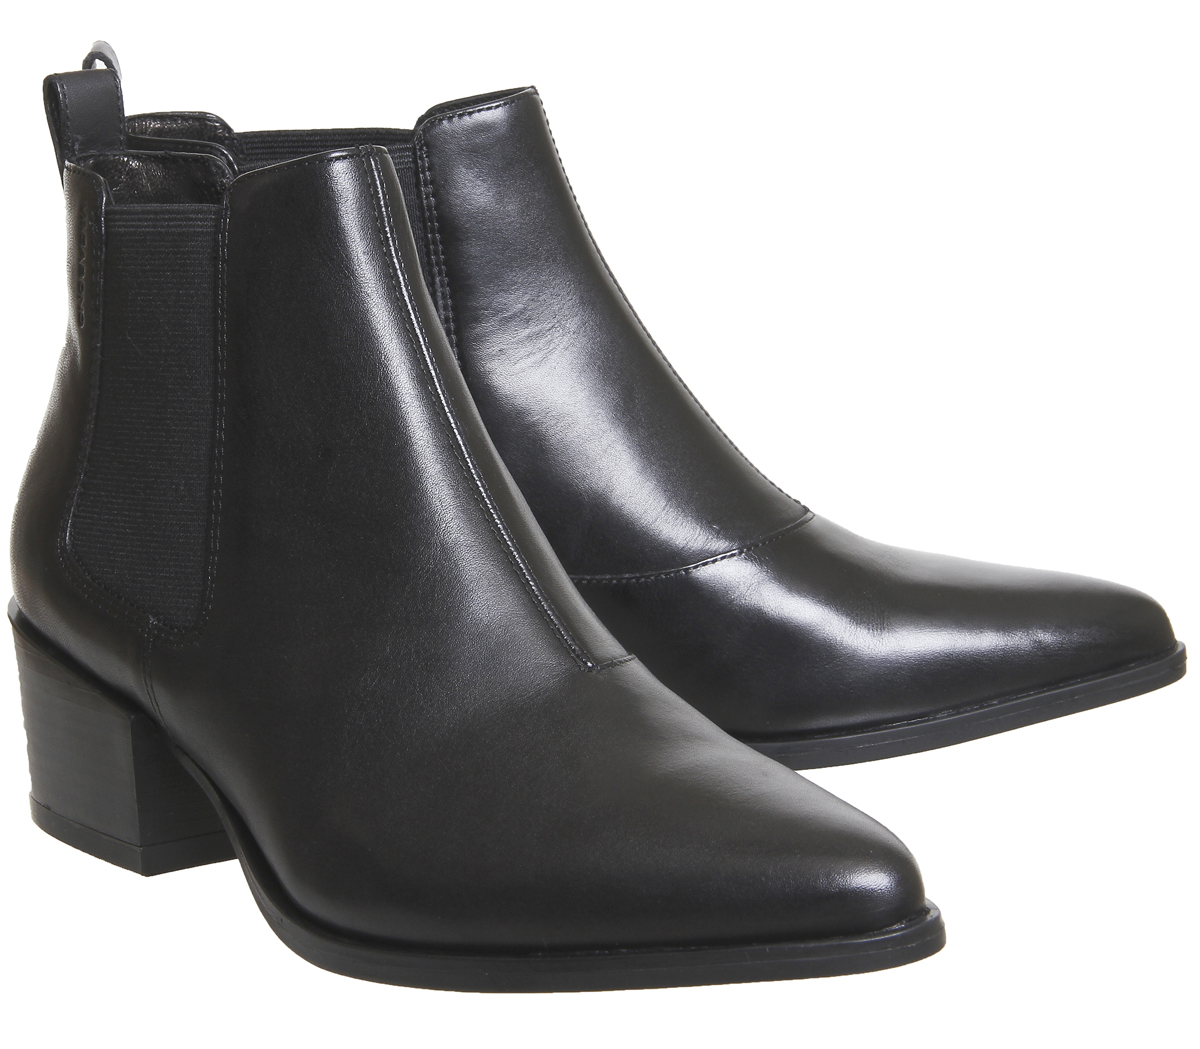 aa1321603ef Details about Womens Vagabond Marja Ankle Boots Black Leather Boots